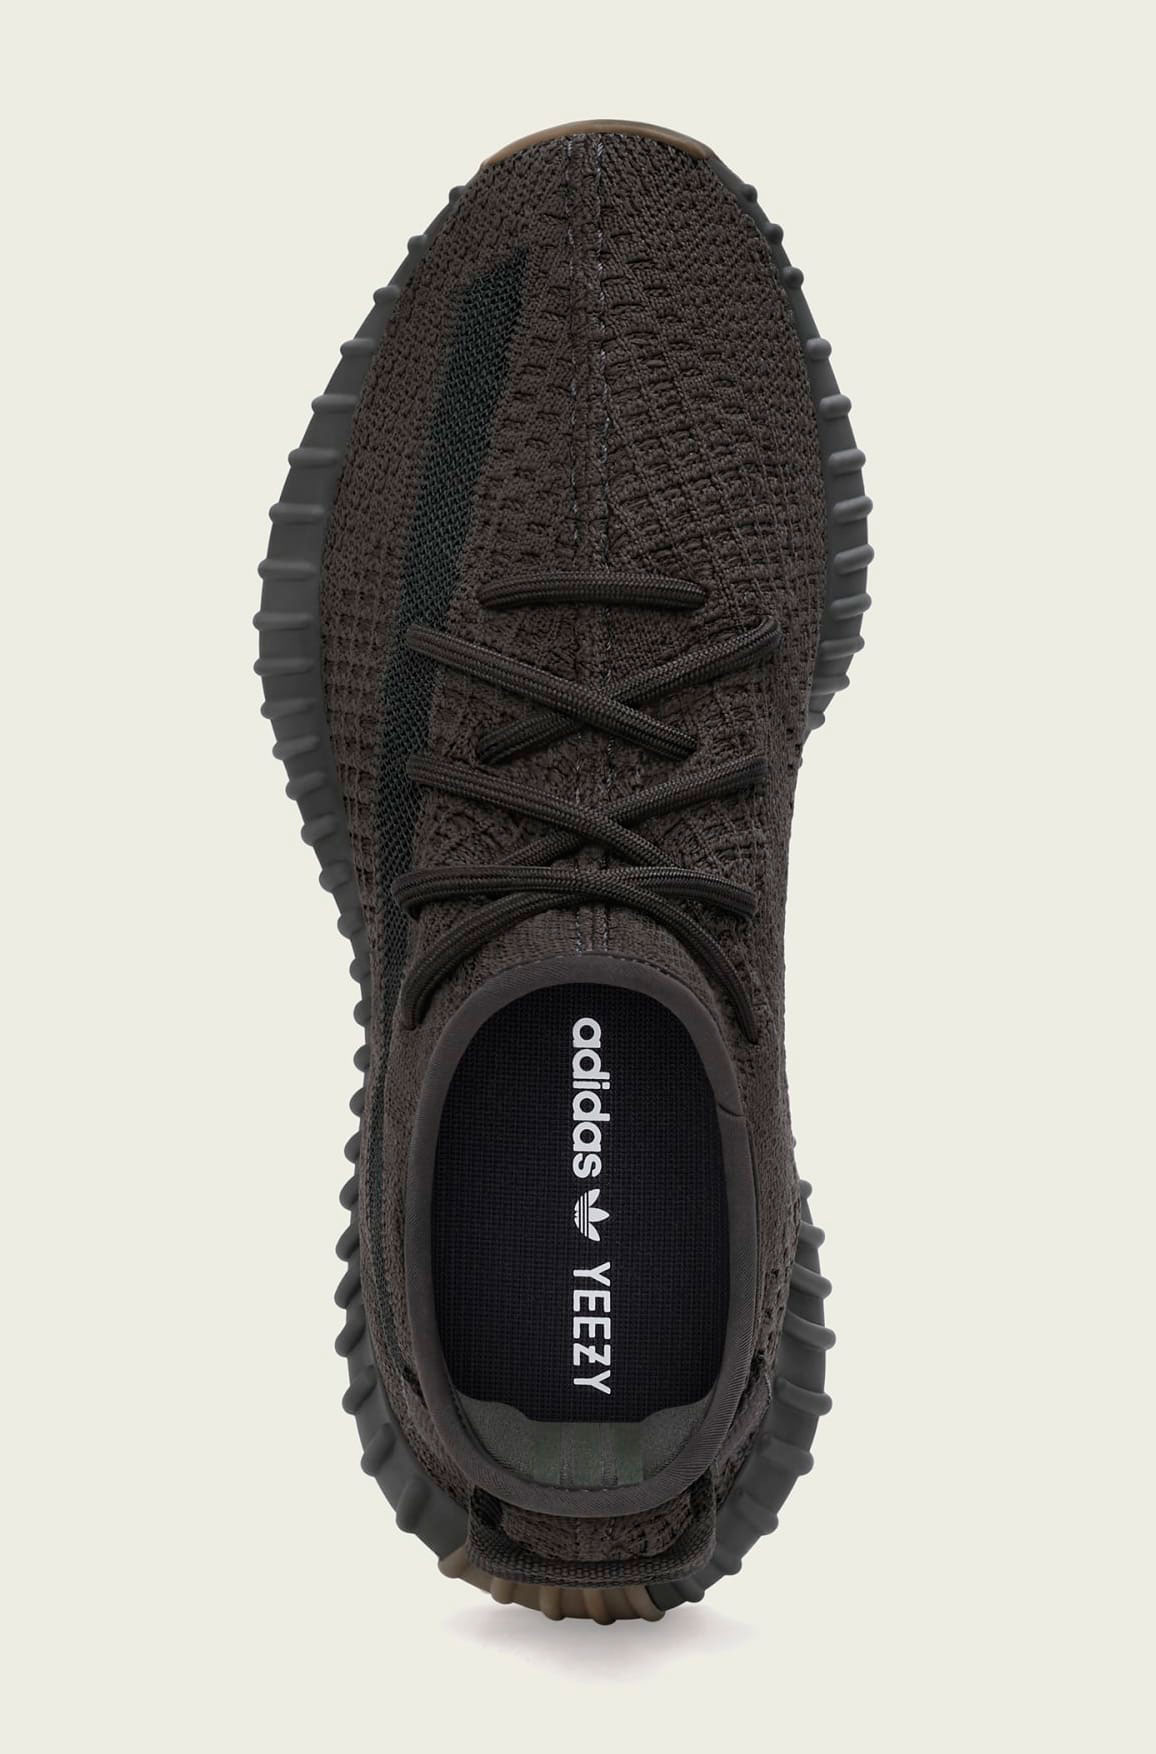 yeezy-boost-350-v2-cinder-release-date-price-4